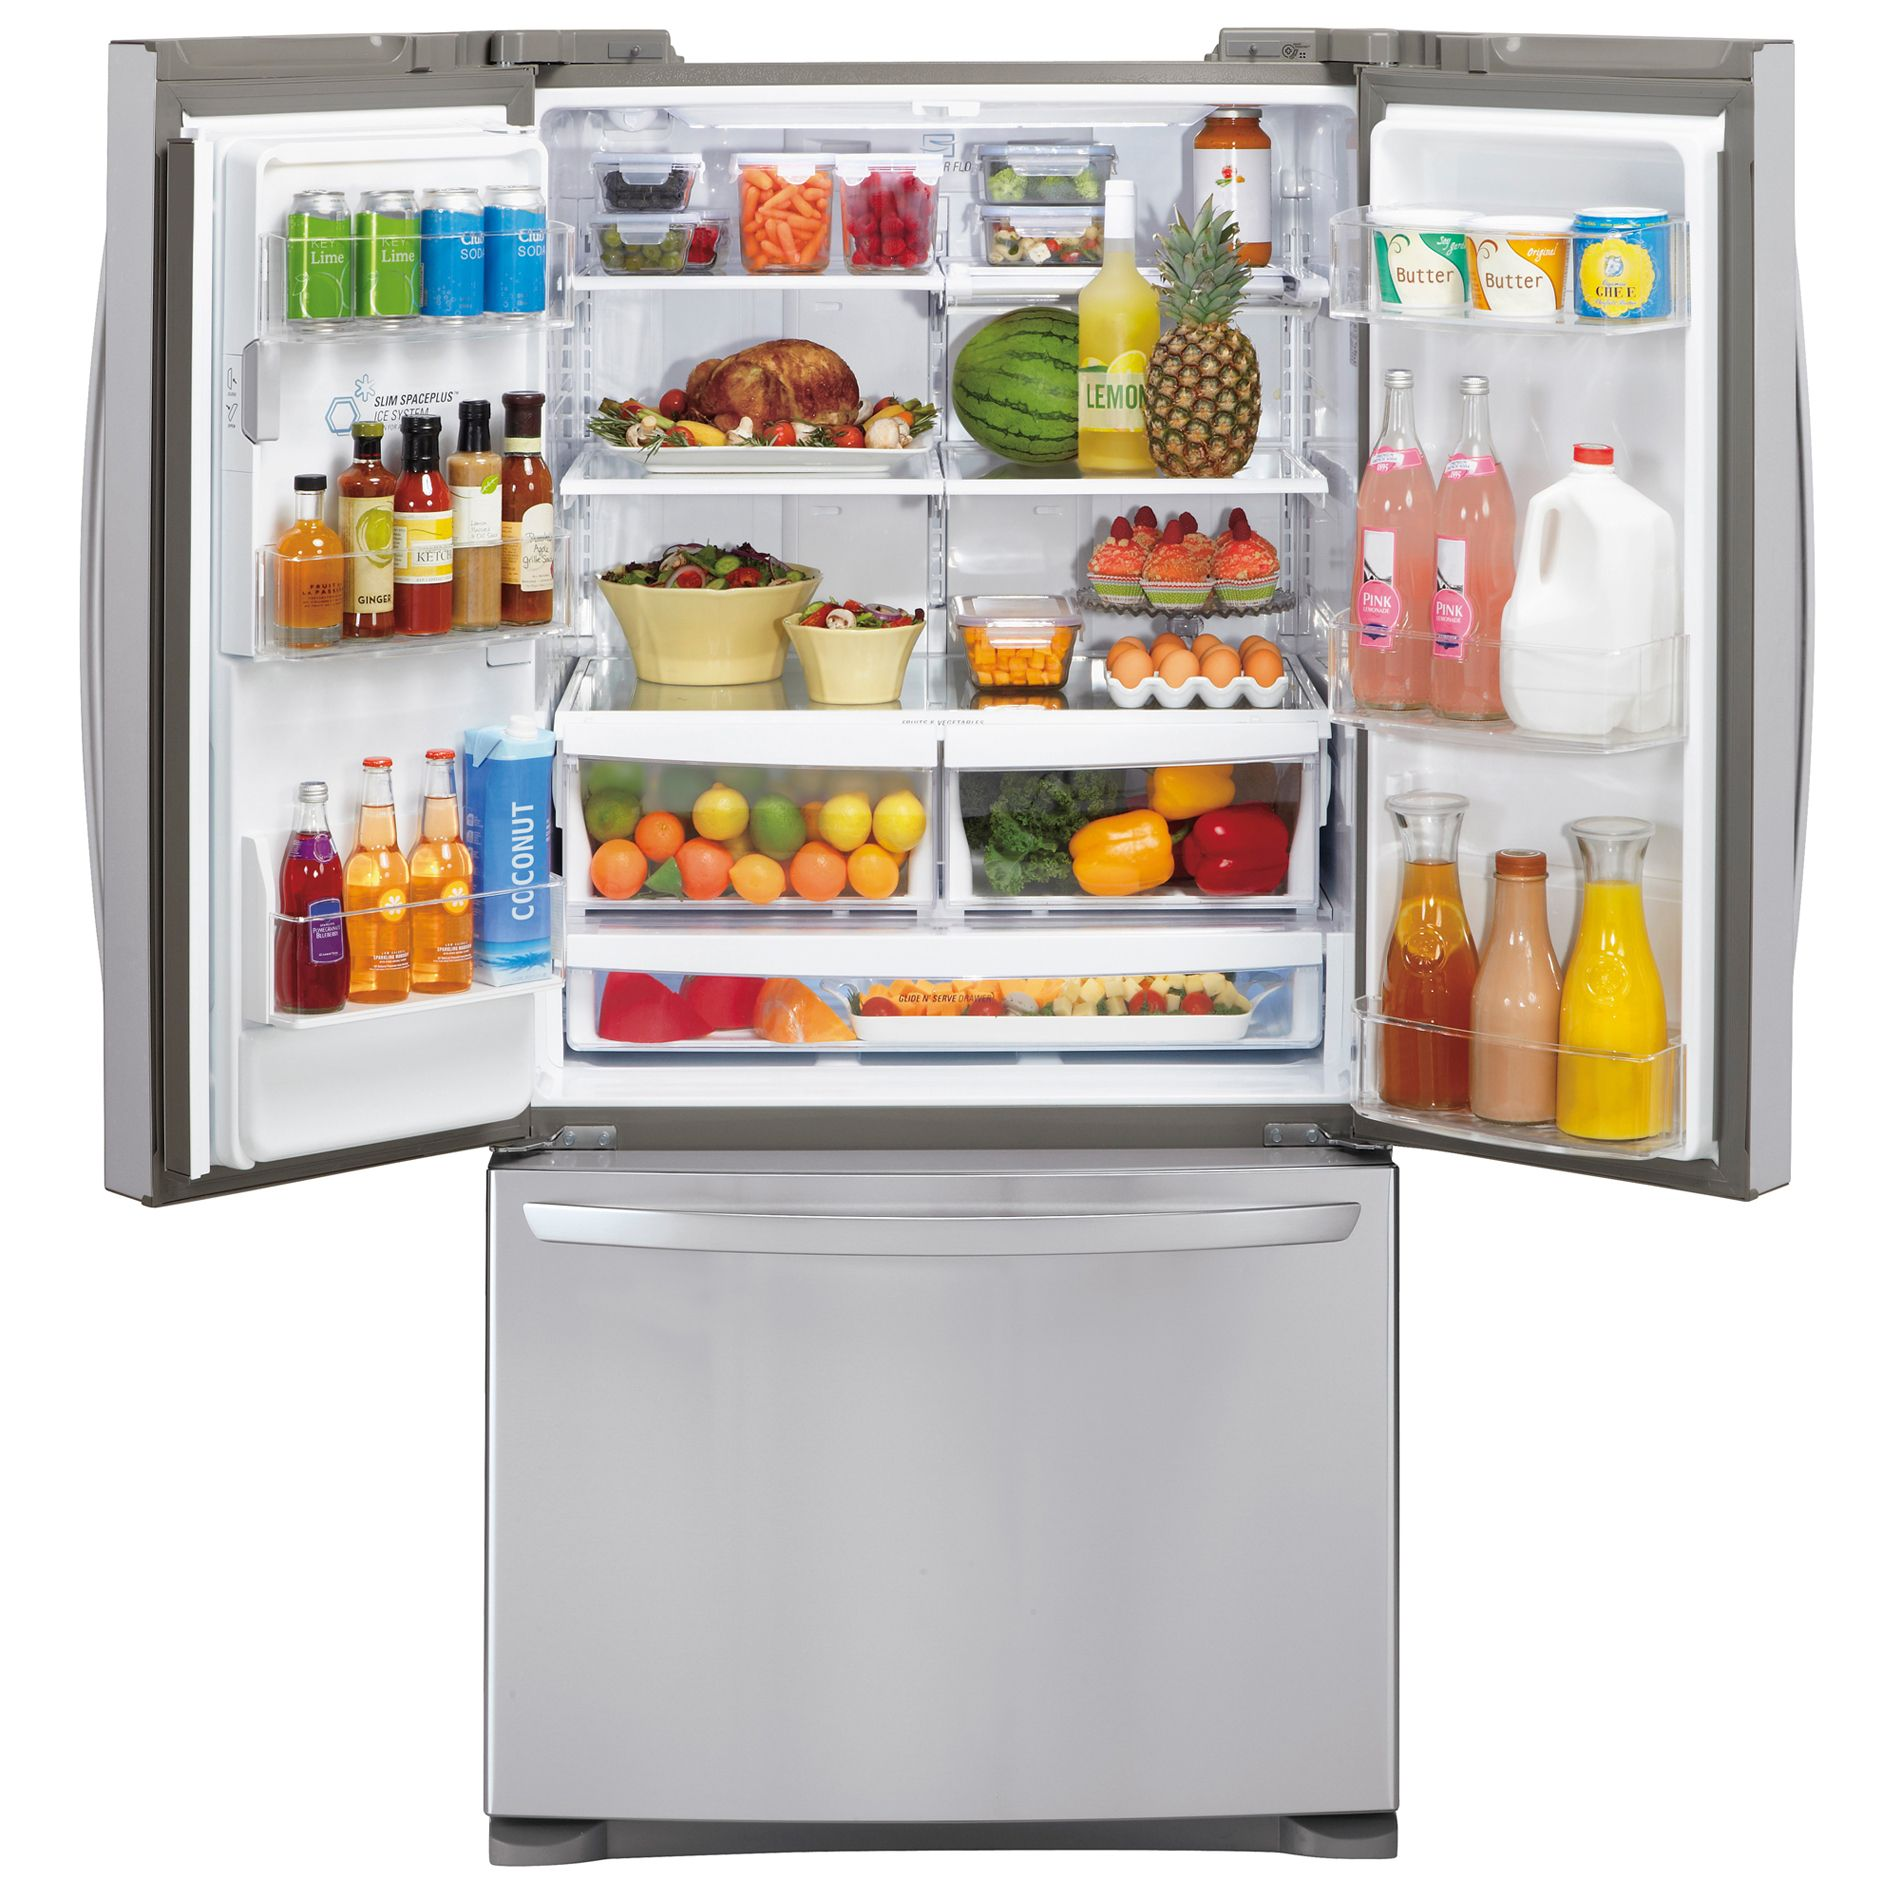 LG LFX28968ST 26.8 cu. ft.  French Door Bottom-Freezer Refrigerator - Stainless Steel